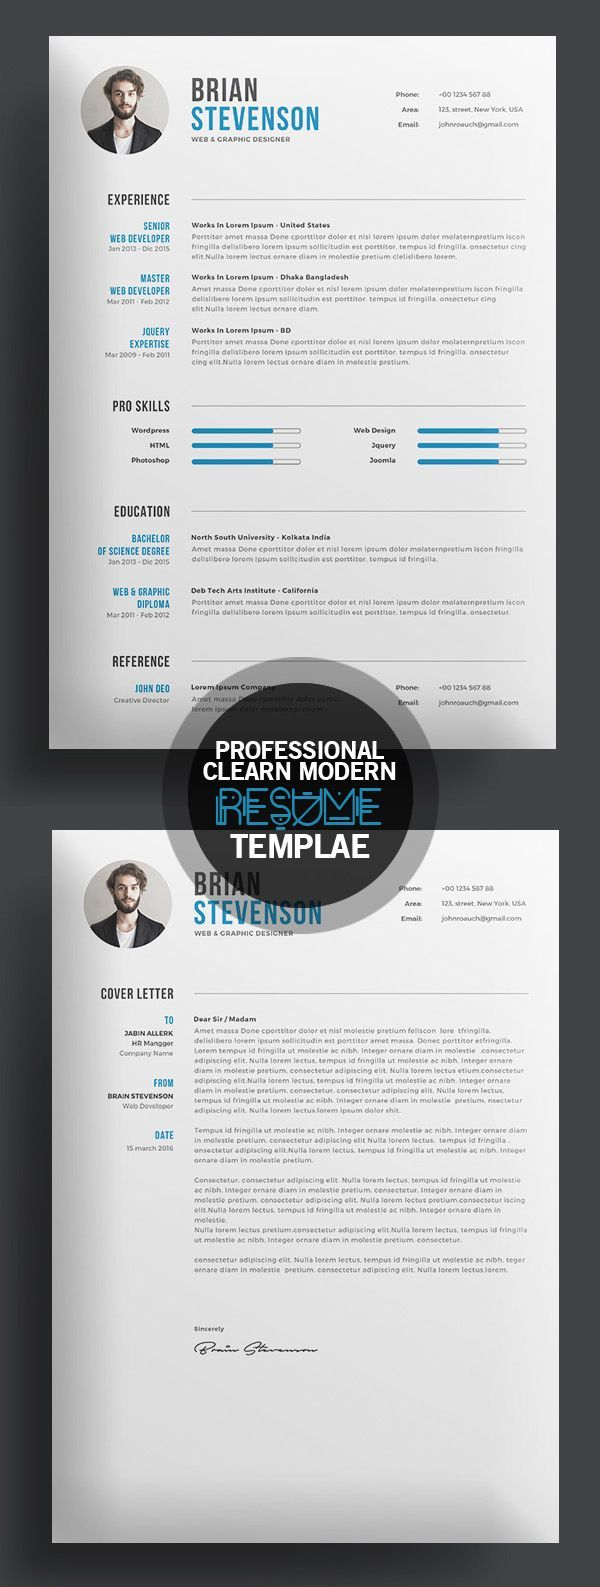 10 best cv images on Pinterest | Cv template, Resume templates and ...